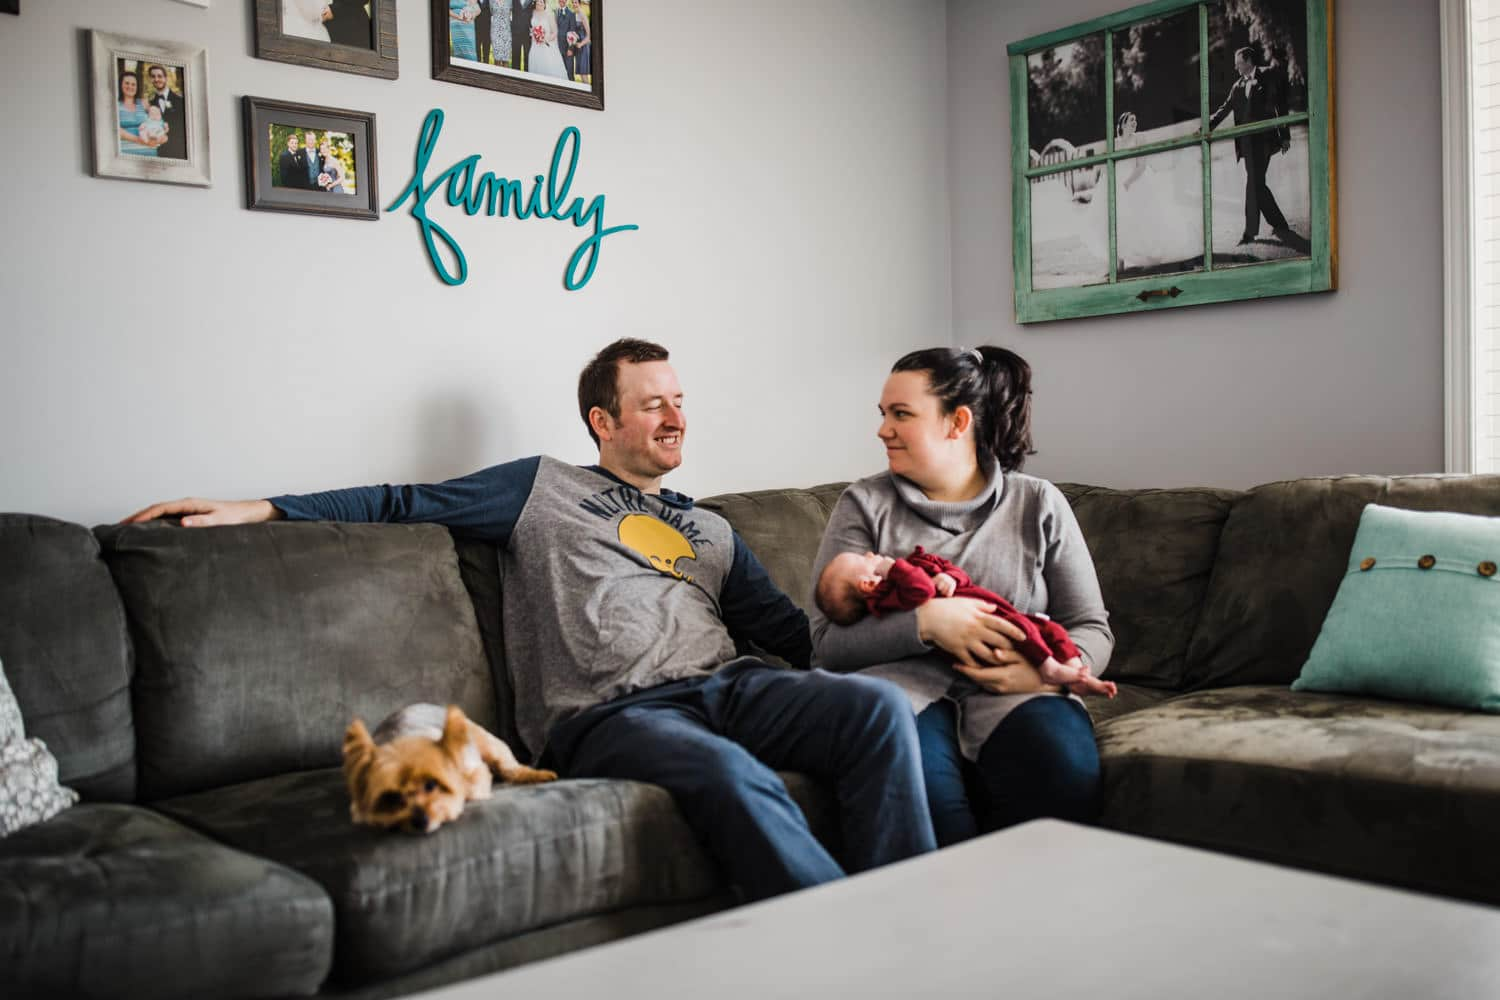 new parents sit together with baby in living room